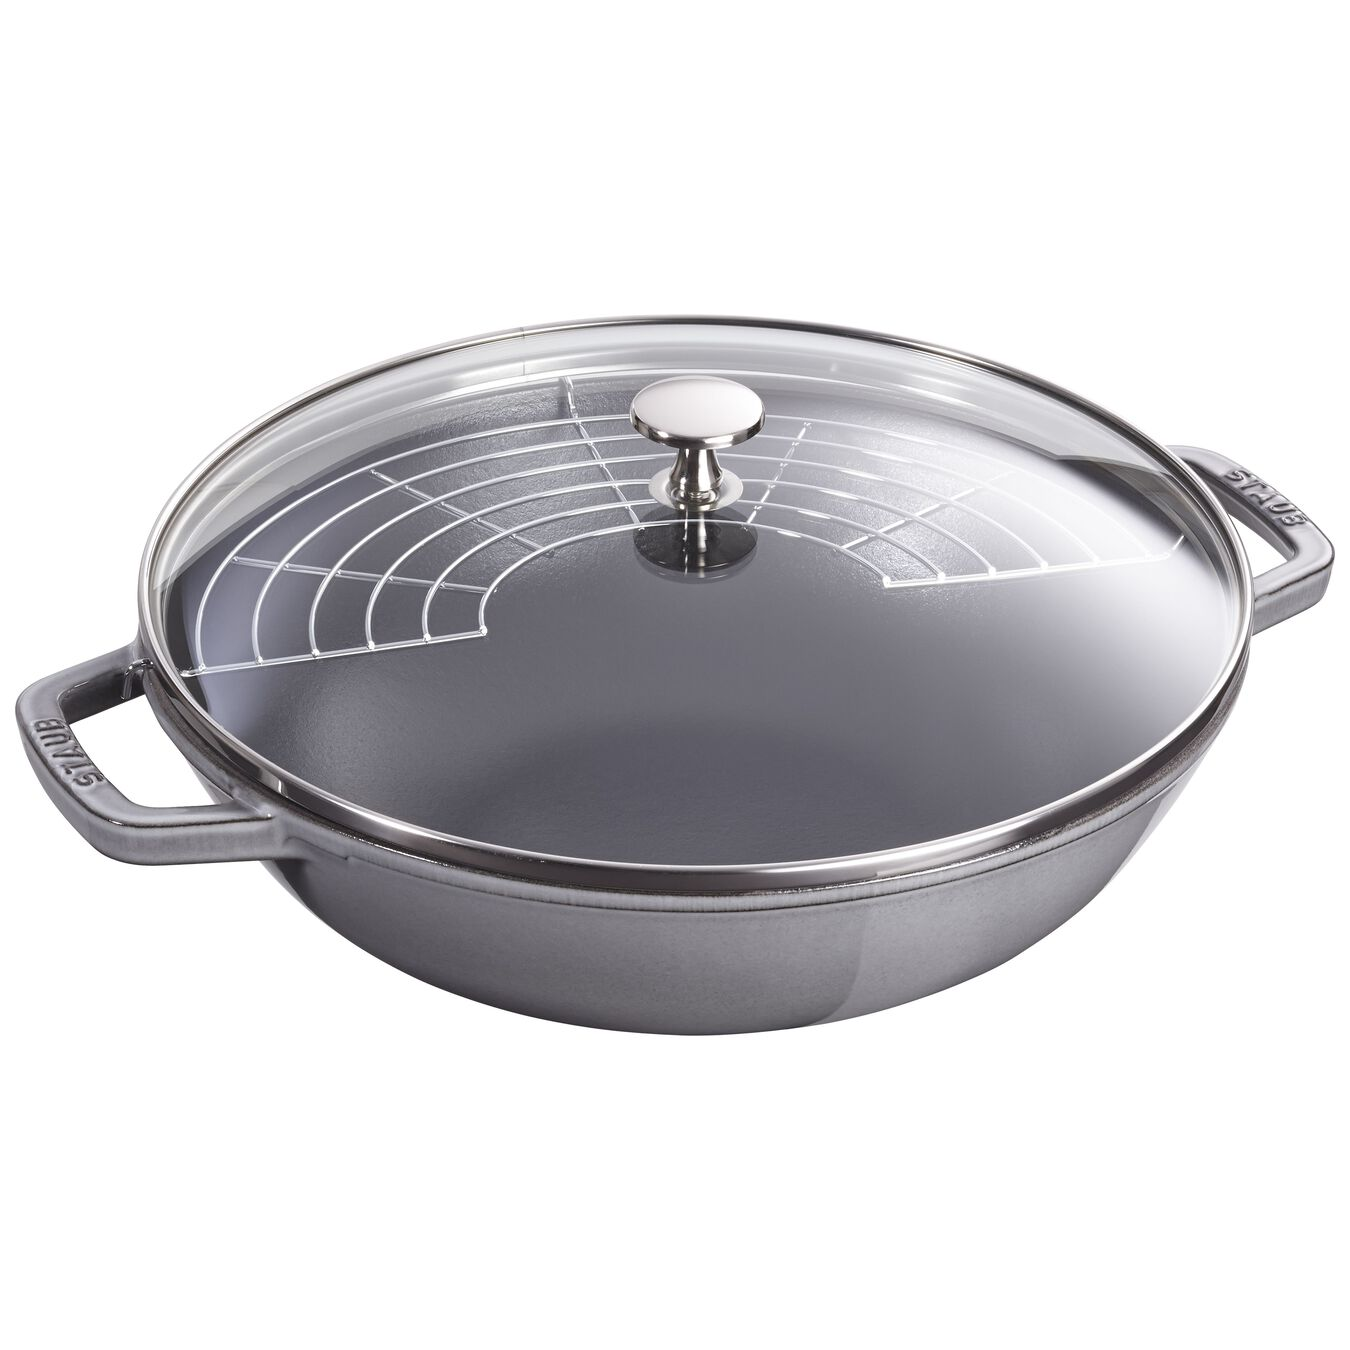 4.75 qt, Wok with glass lid, graphite grey - Visual Imperfections,,large 2